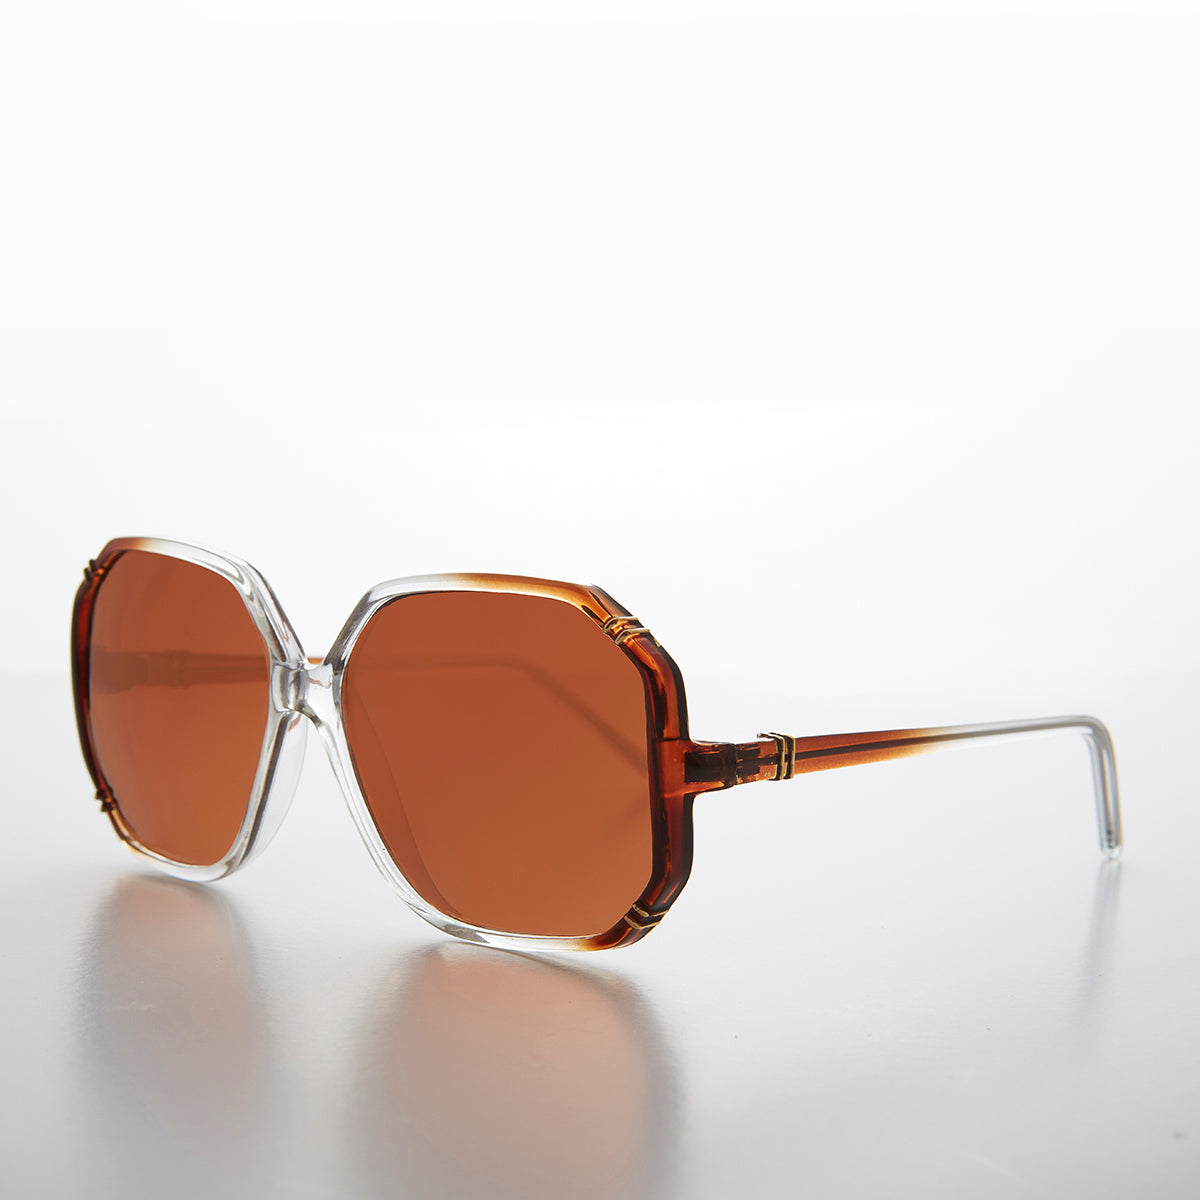 Women's Oversized Octagon Sunglass with Copper Driving Lens